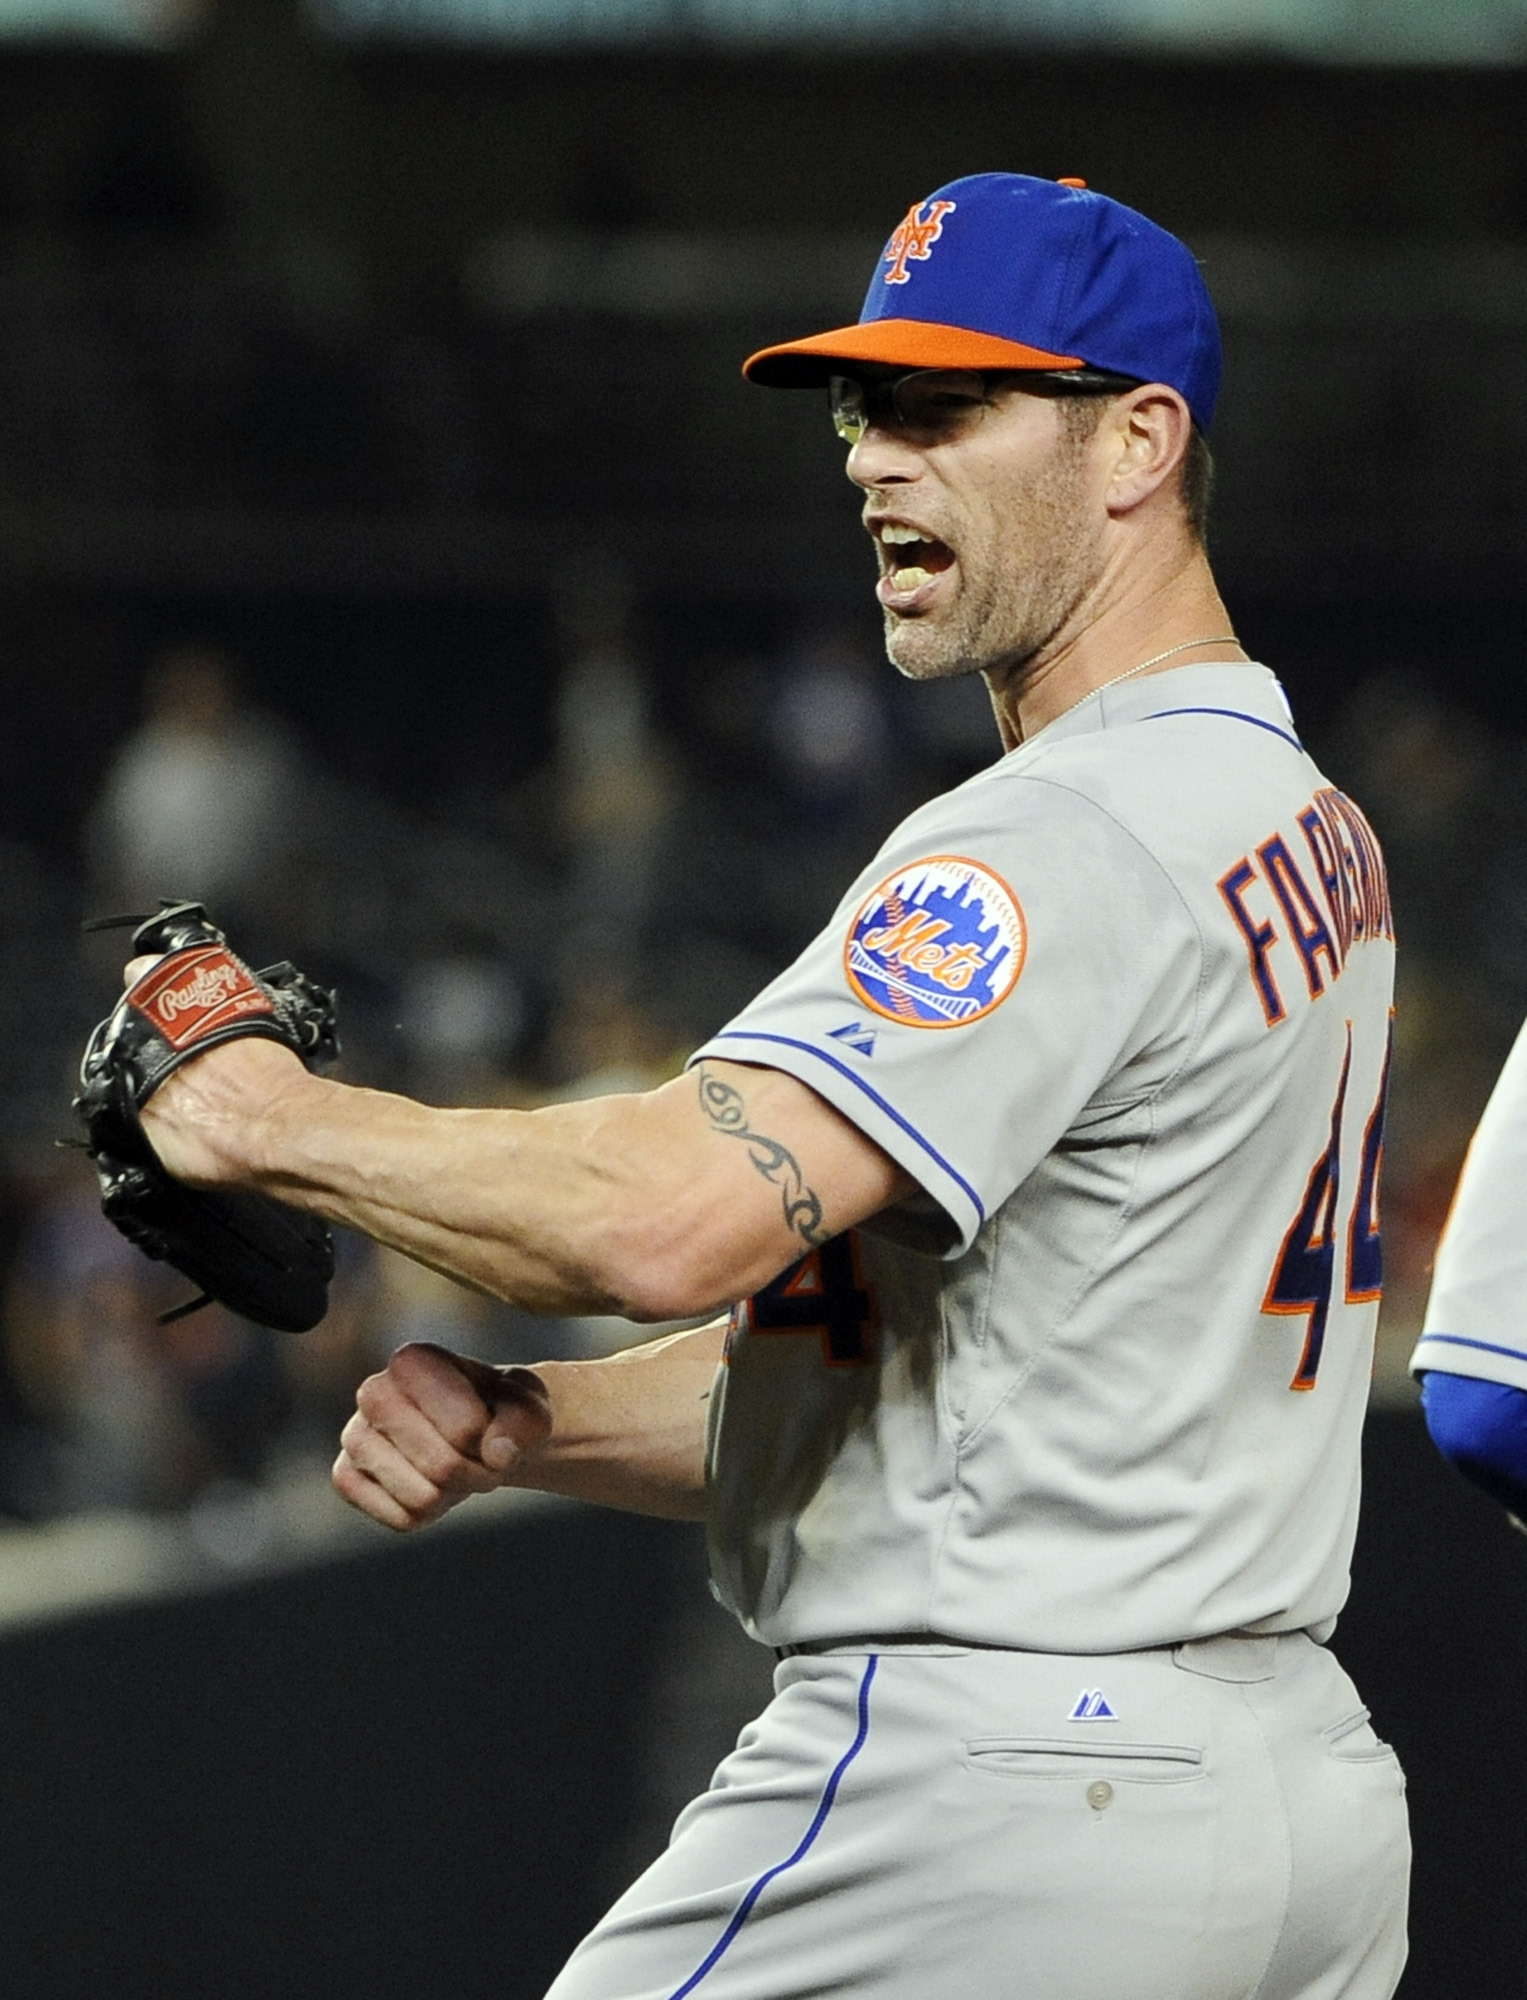 Two days after he saved a game against the New York Yankees, reliever Kyle Farnsworth was released by the Mets as a cost-cutting move.